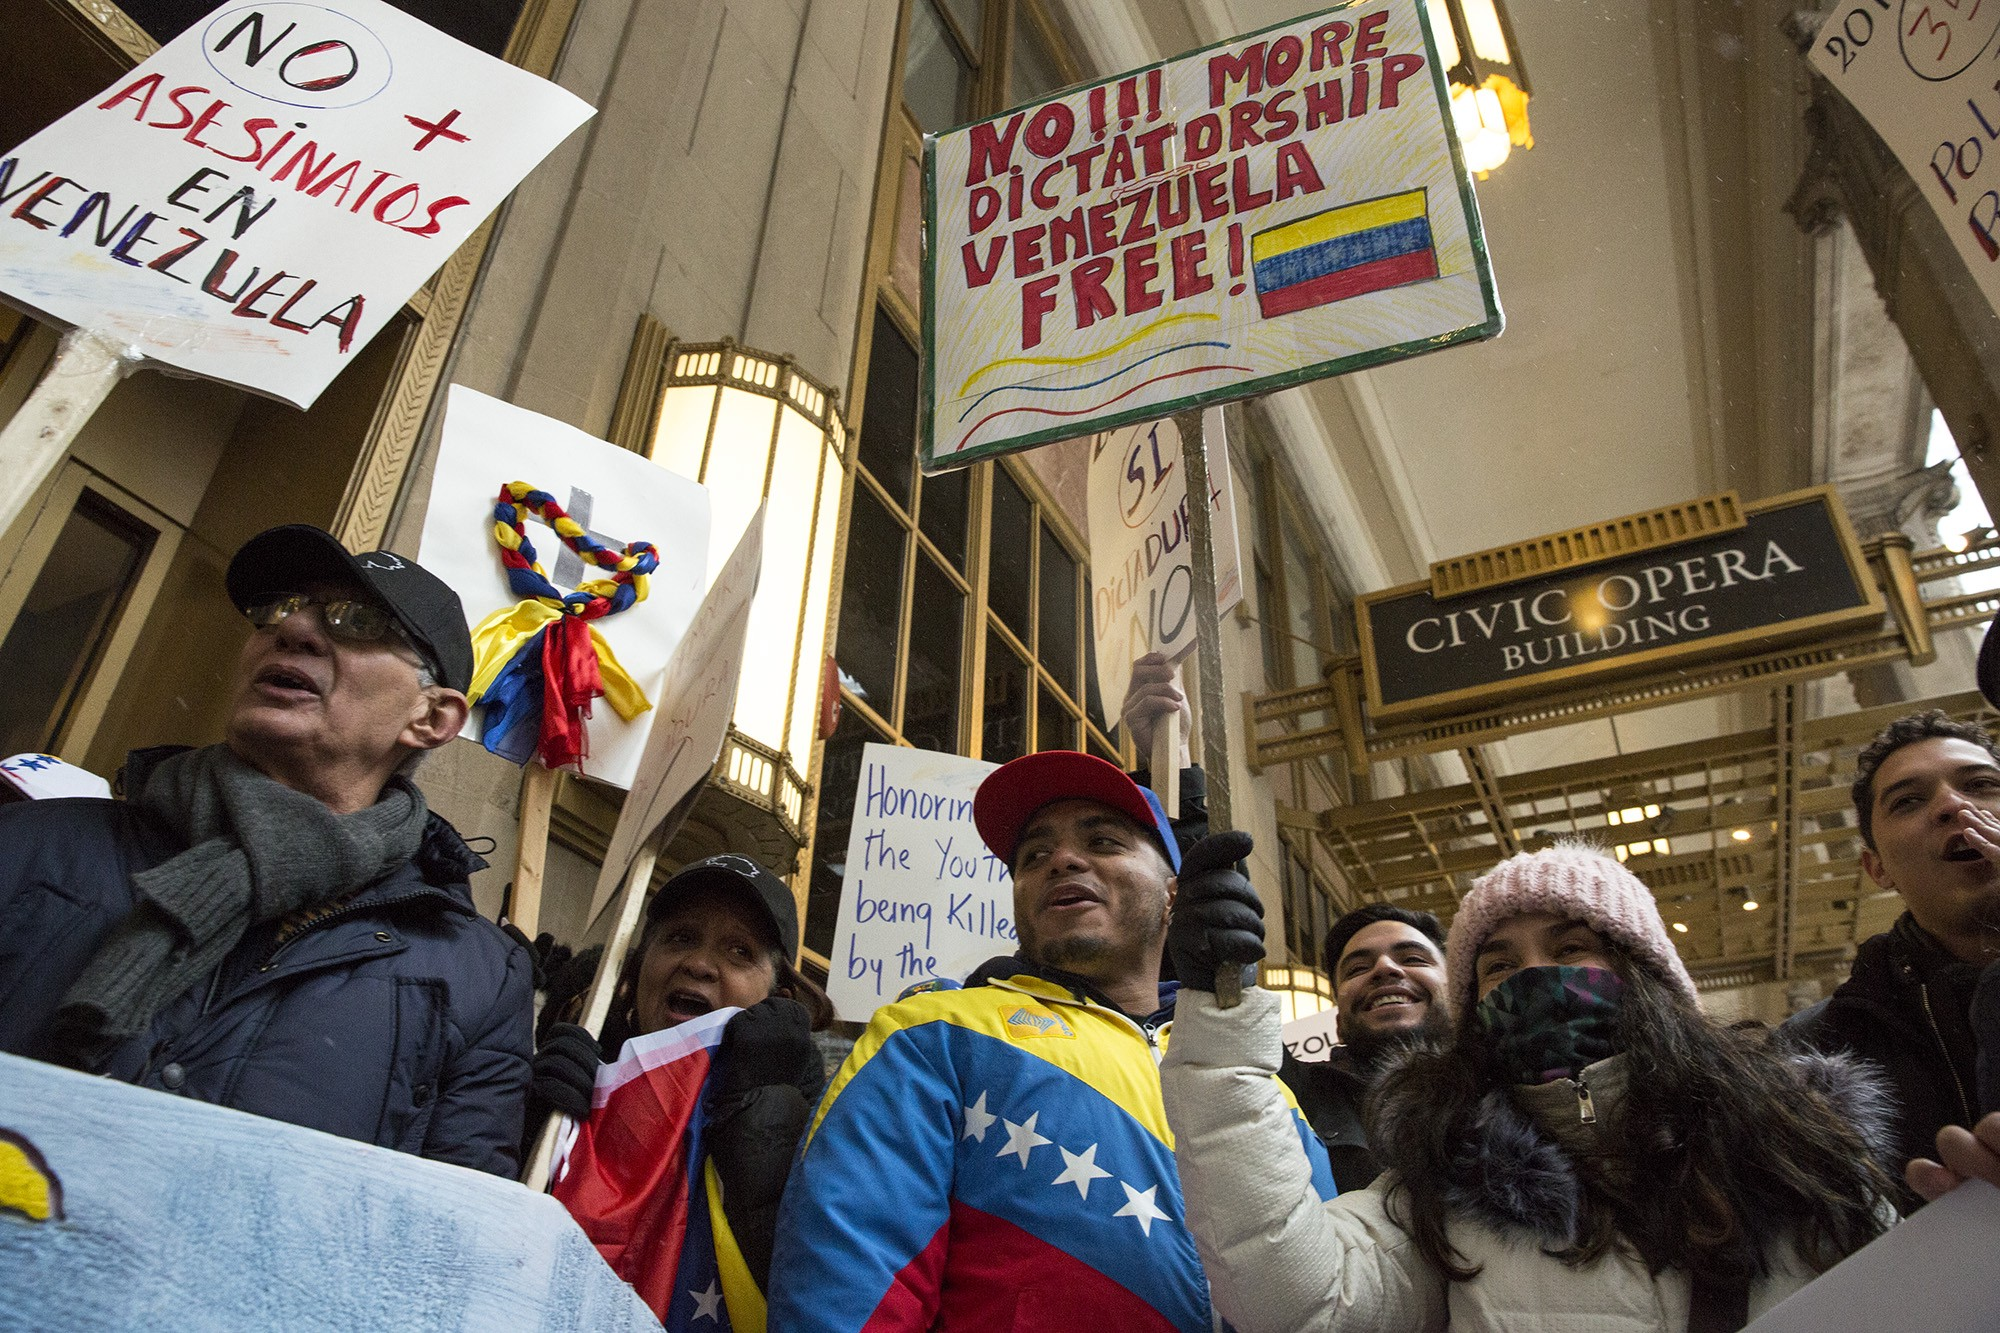 Demonstrators Brought Flags And Handmade Signs To Yesterdays Rally Outside Of The The Consulate General Of Venezuela In Downtown Chicago To Show Their